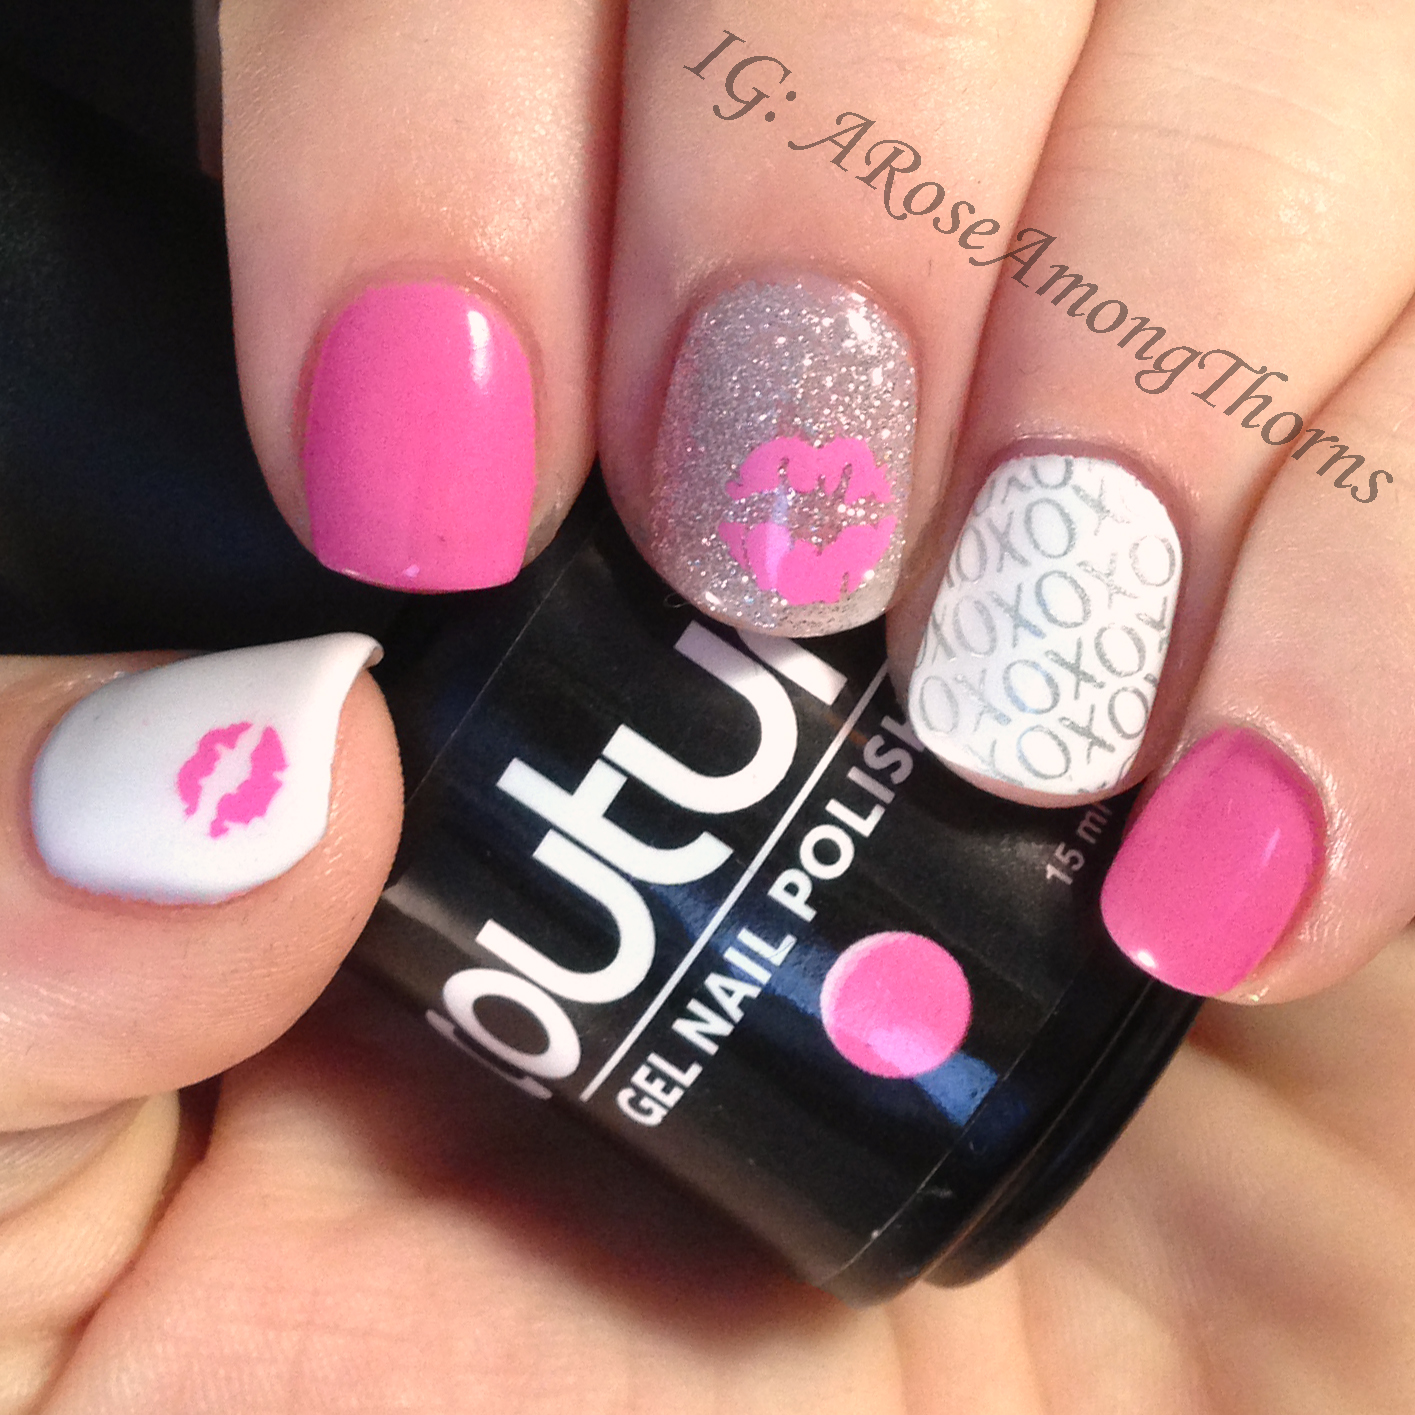 Couture Gel Nail Polish Stamping Nail Art Manicure